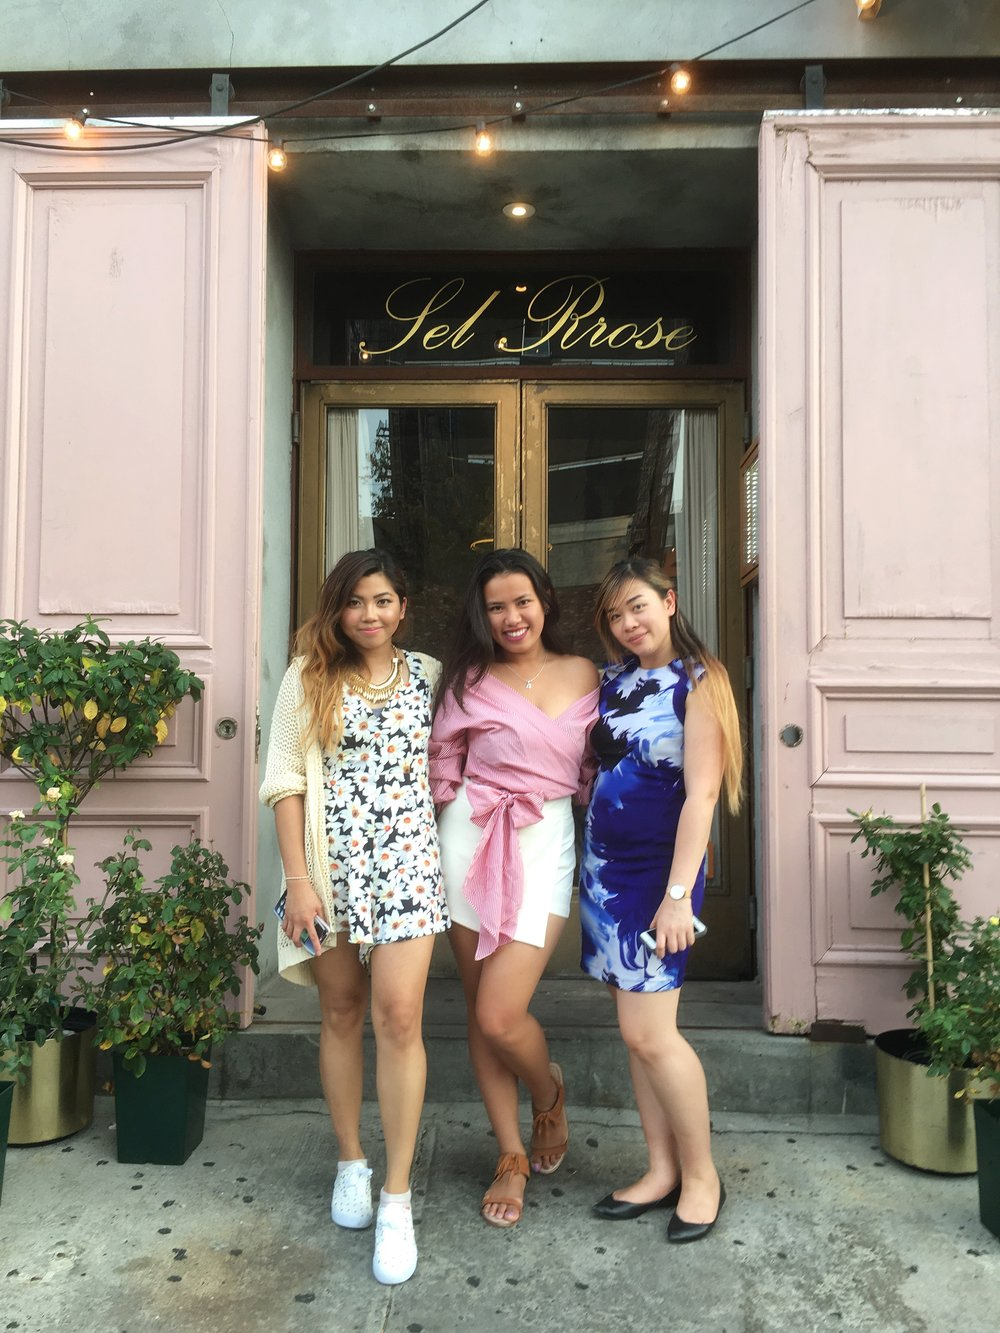 Dinner at Seamore's with my Blogger babes (Dyann and Fiona!)